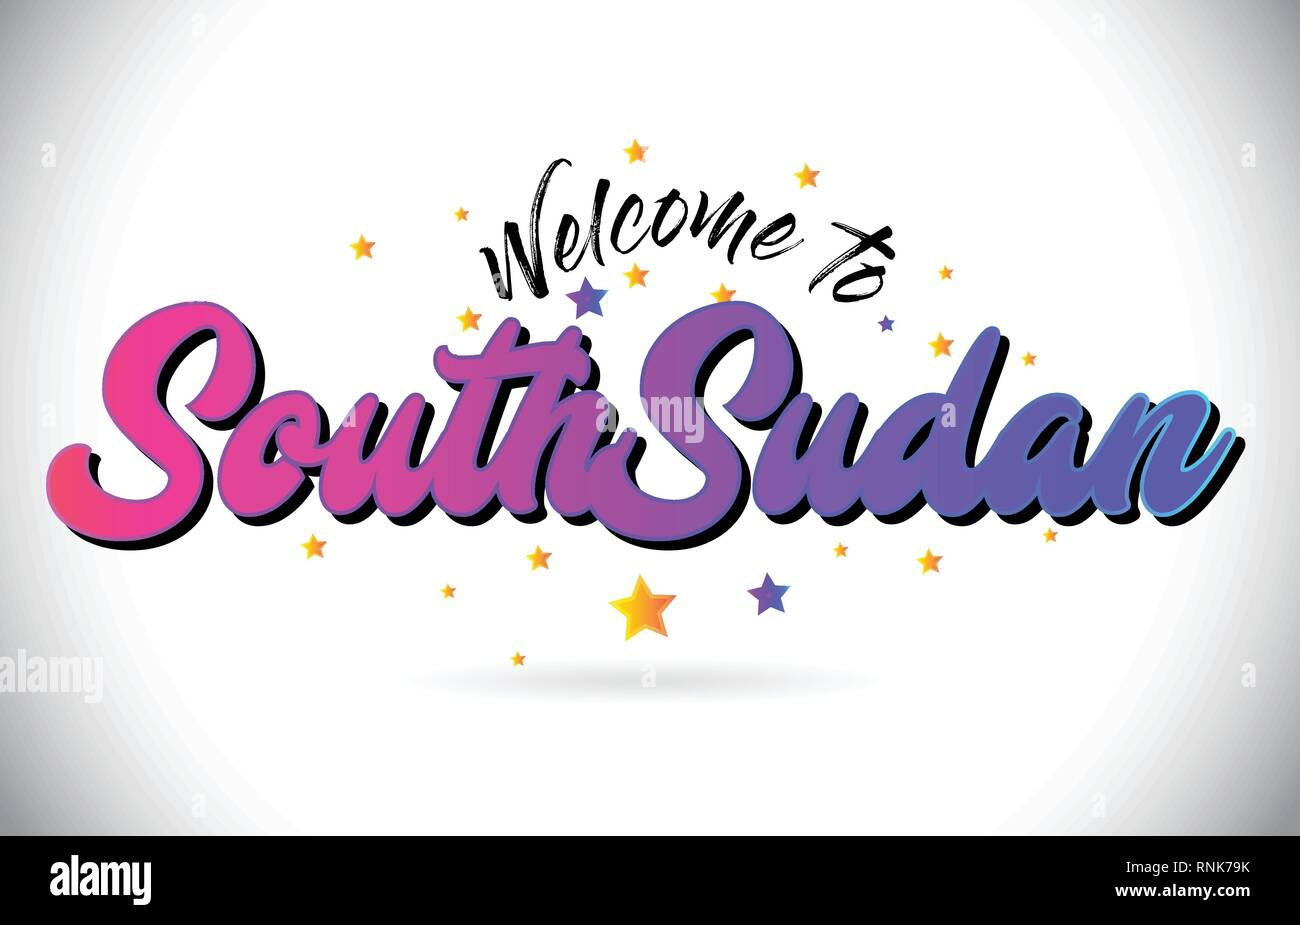 SouthSudan Welcome To Word Text with Purple Pink Handwritten Font and Yellow Stars Shape Design Vector Illusration. - Stock Image